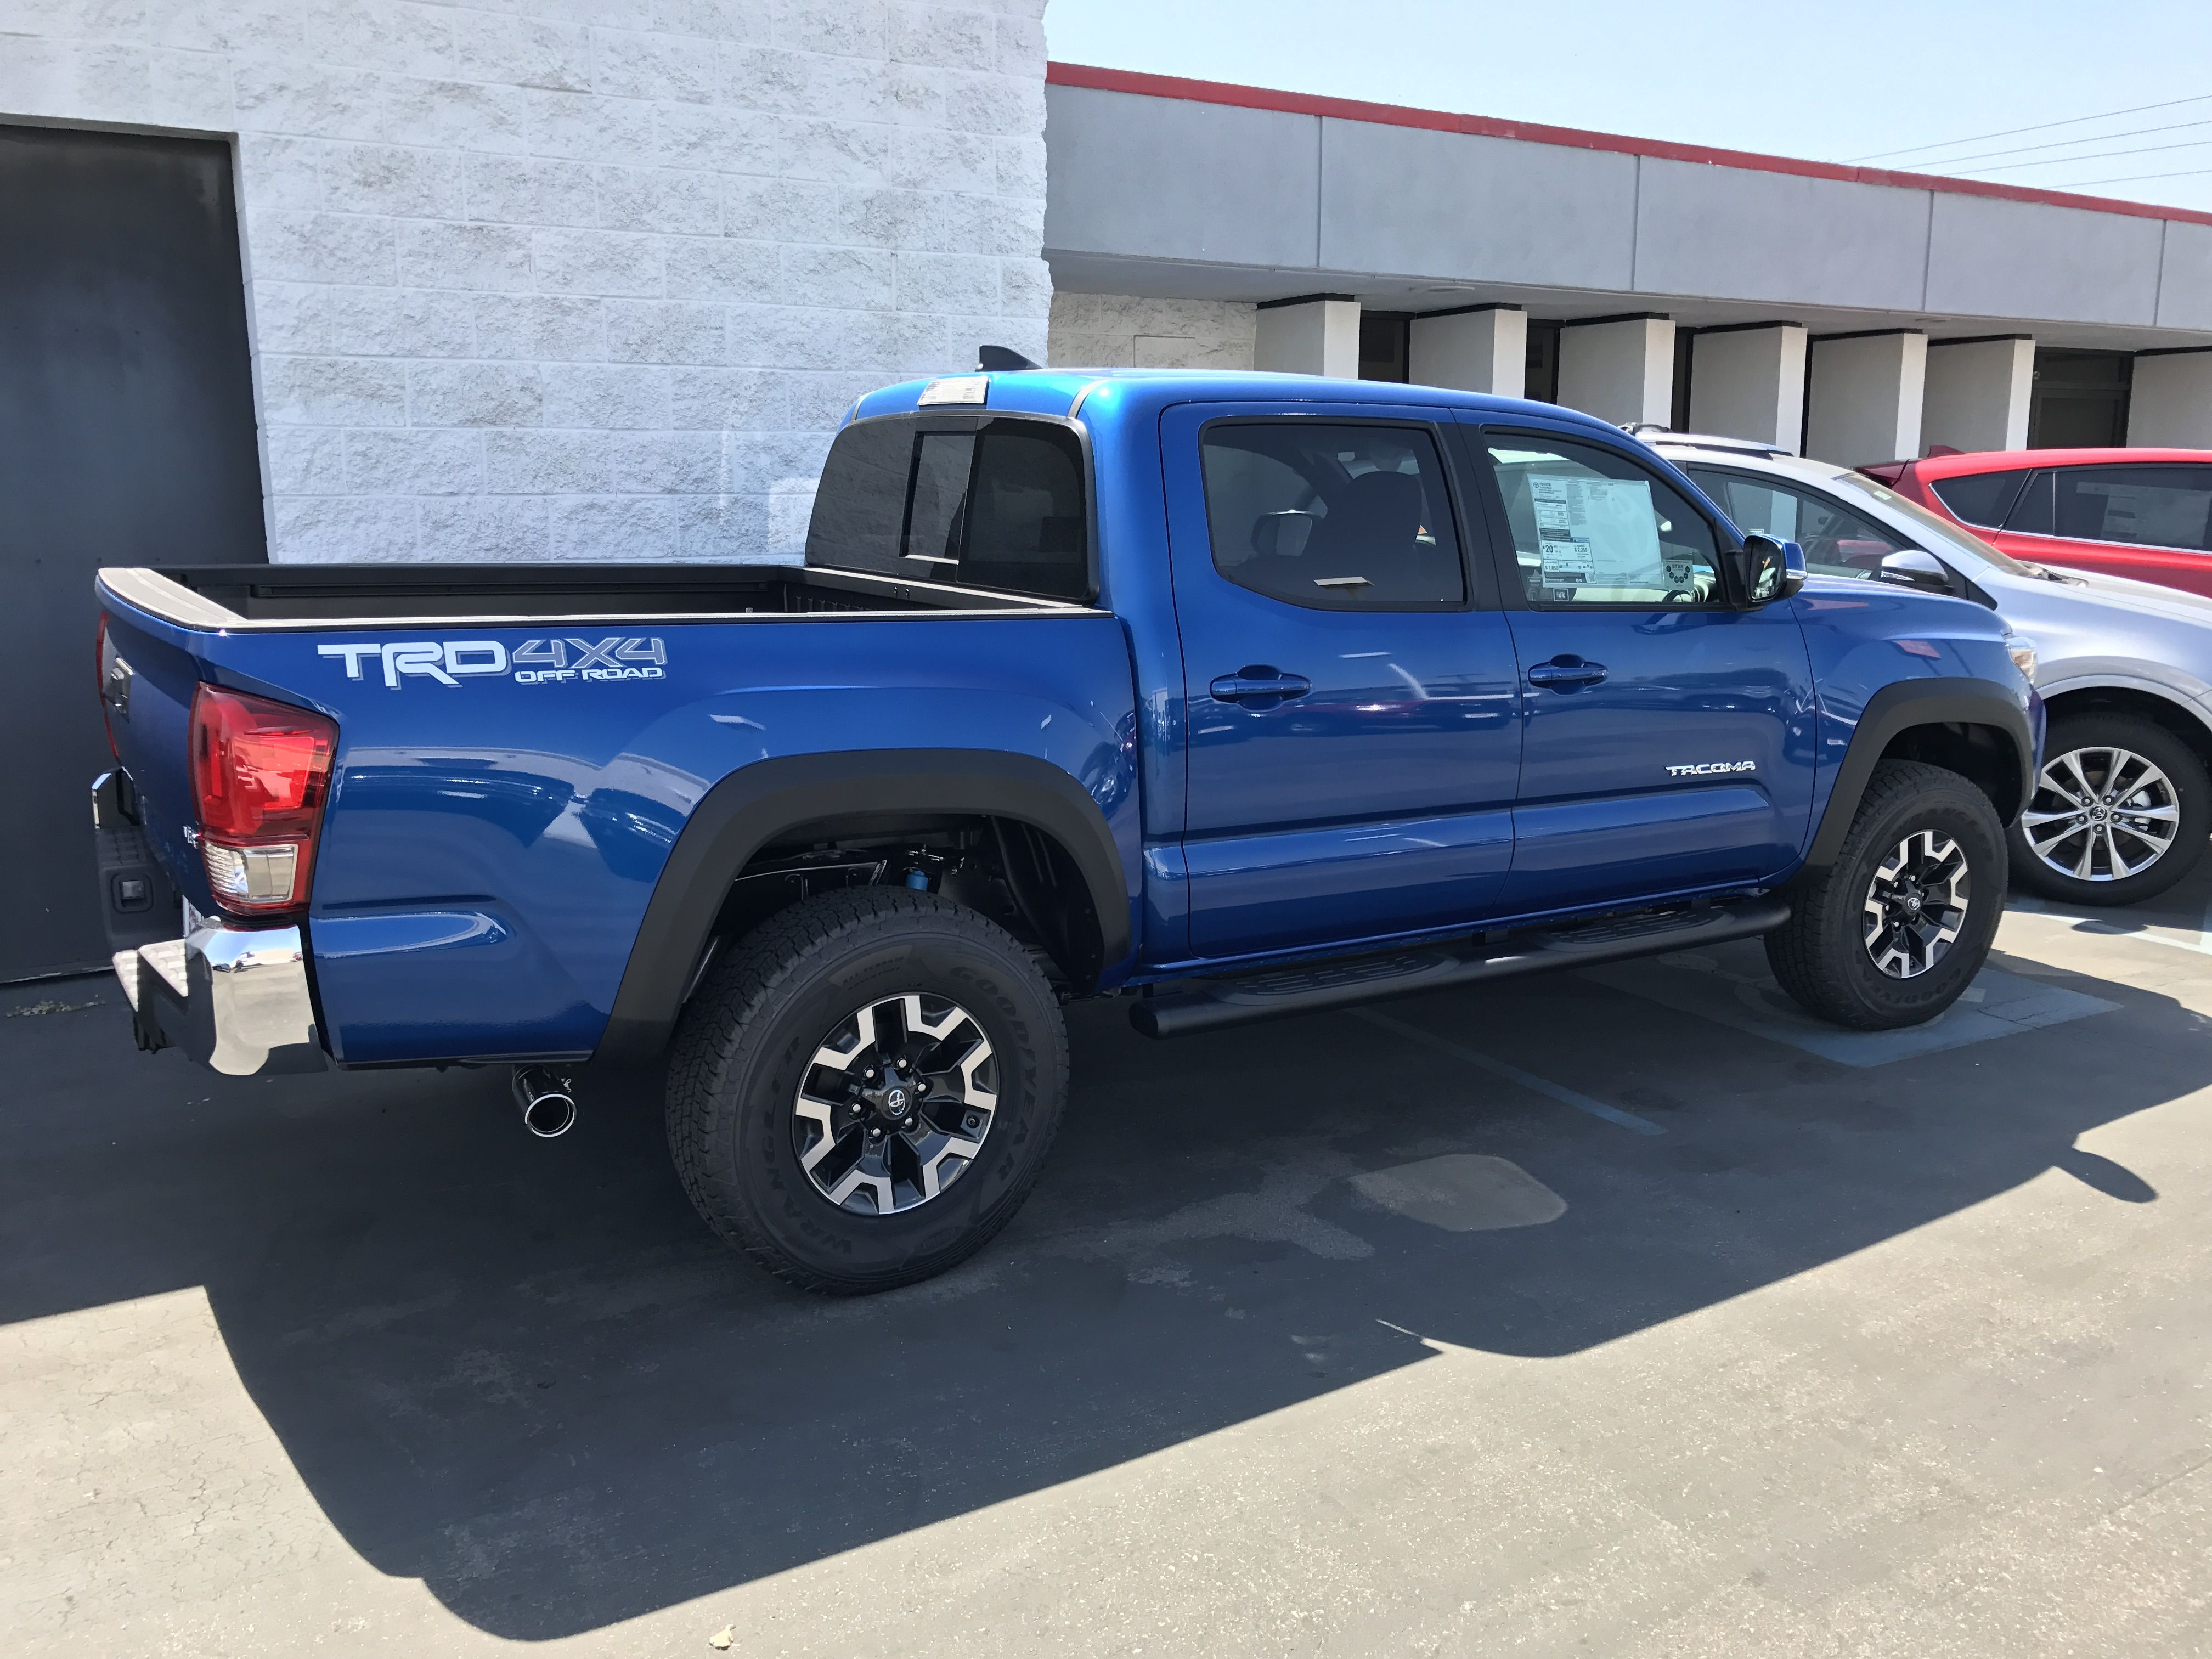 2017 Toyota Ta a in Blue TRD Double Cab 4x4